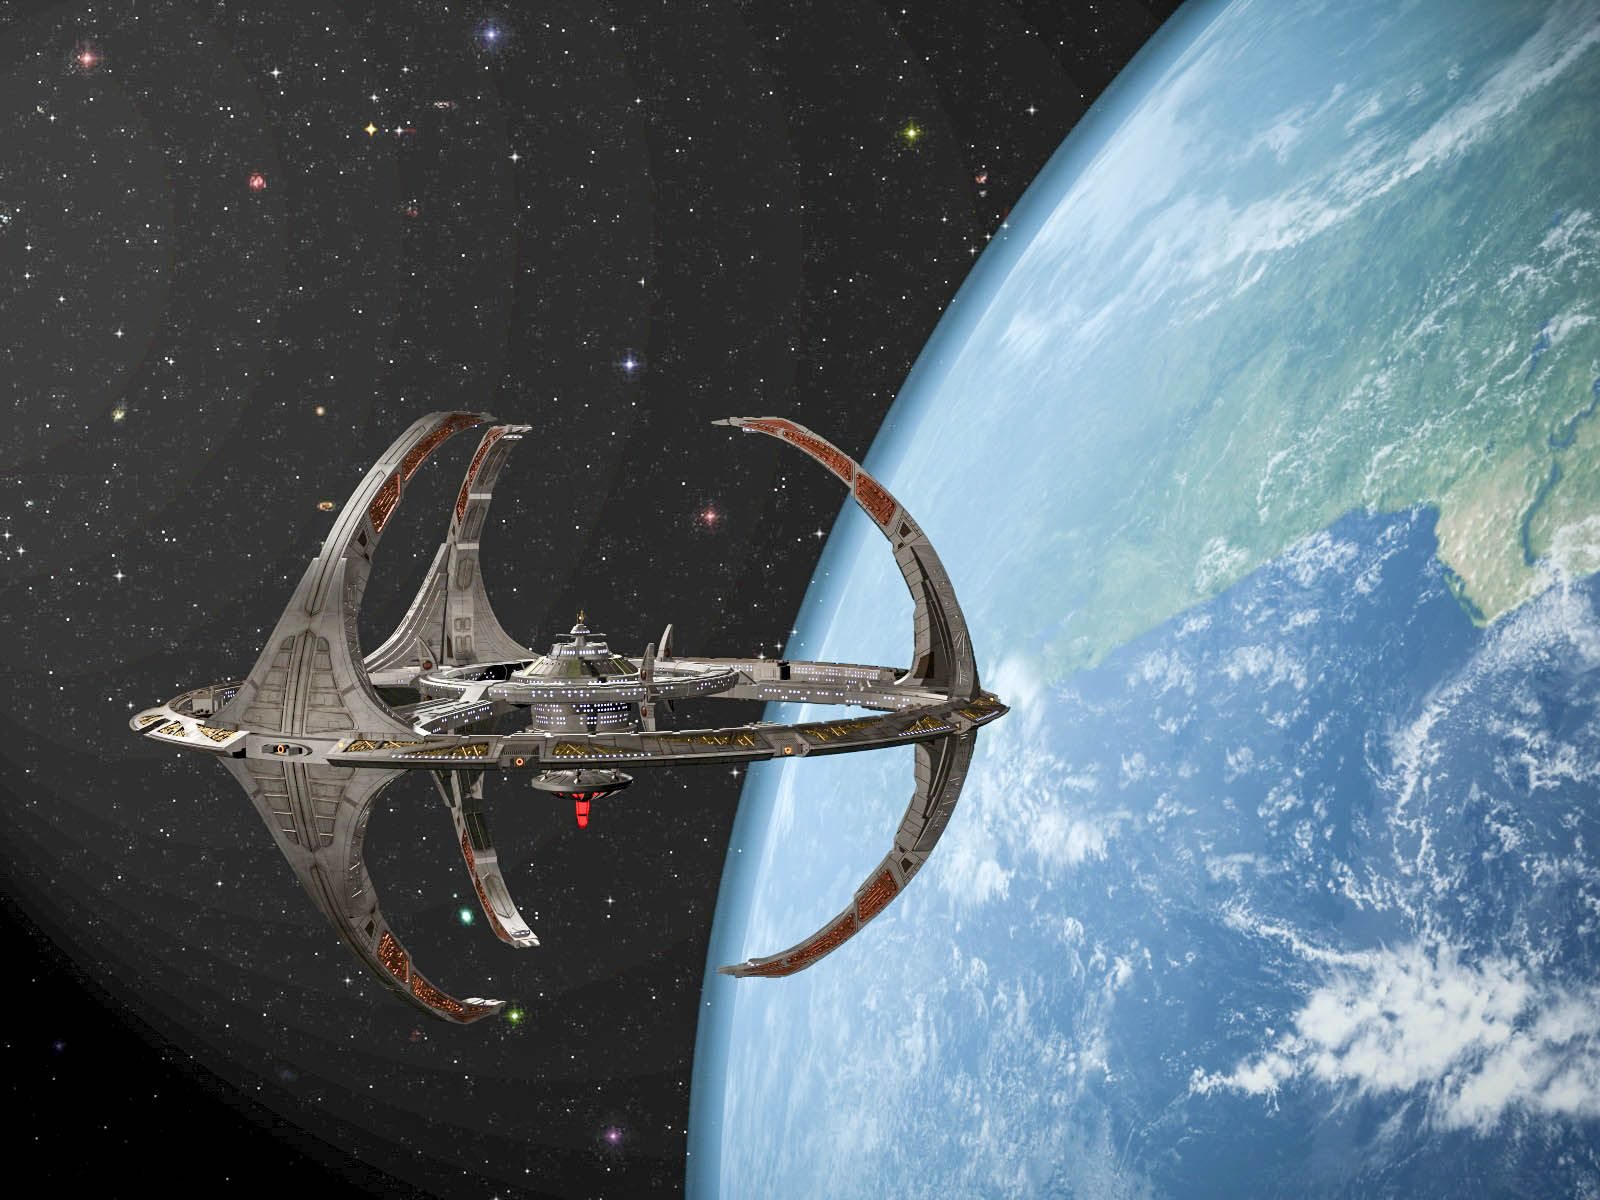 Star trek deep space nine tv show hd wallpapers hd - Deep space wallpaper hd ...